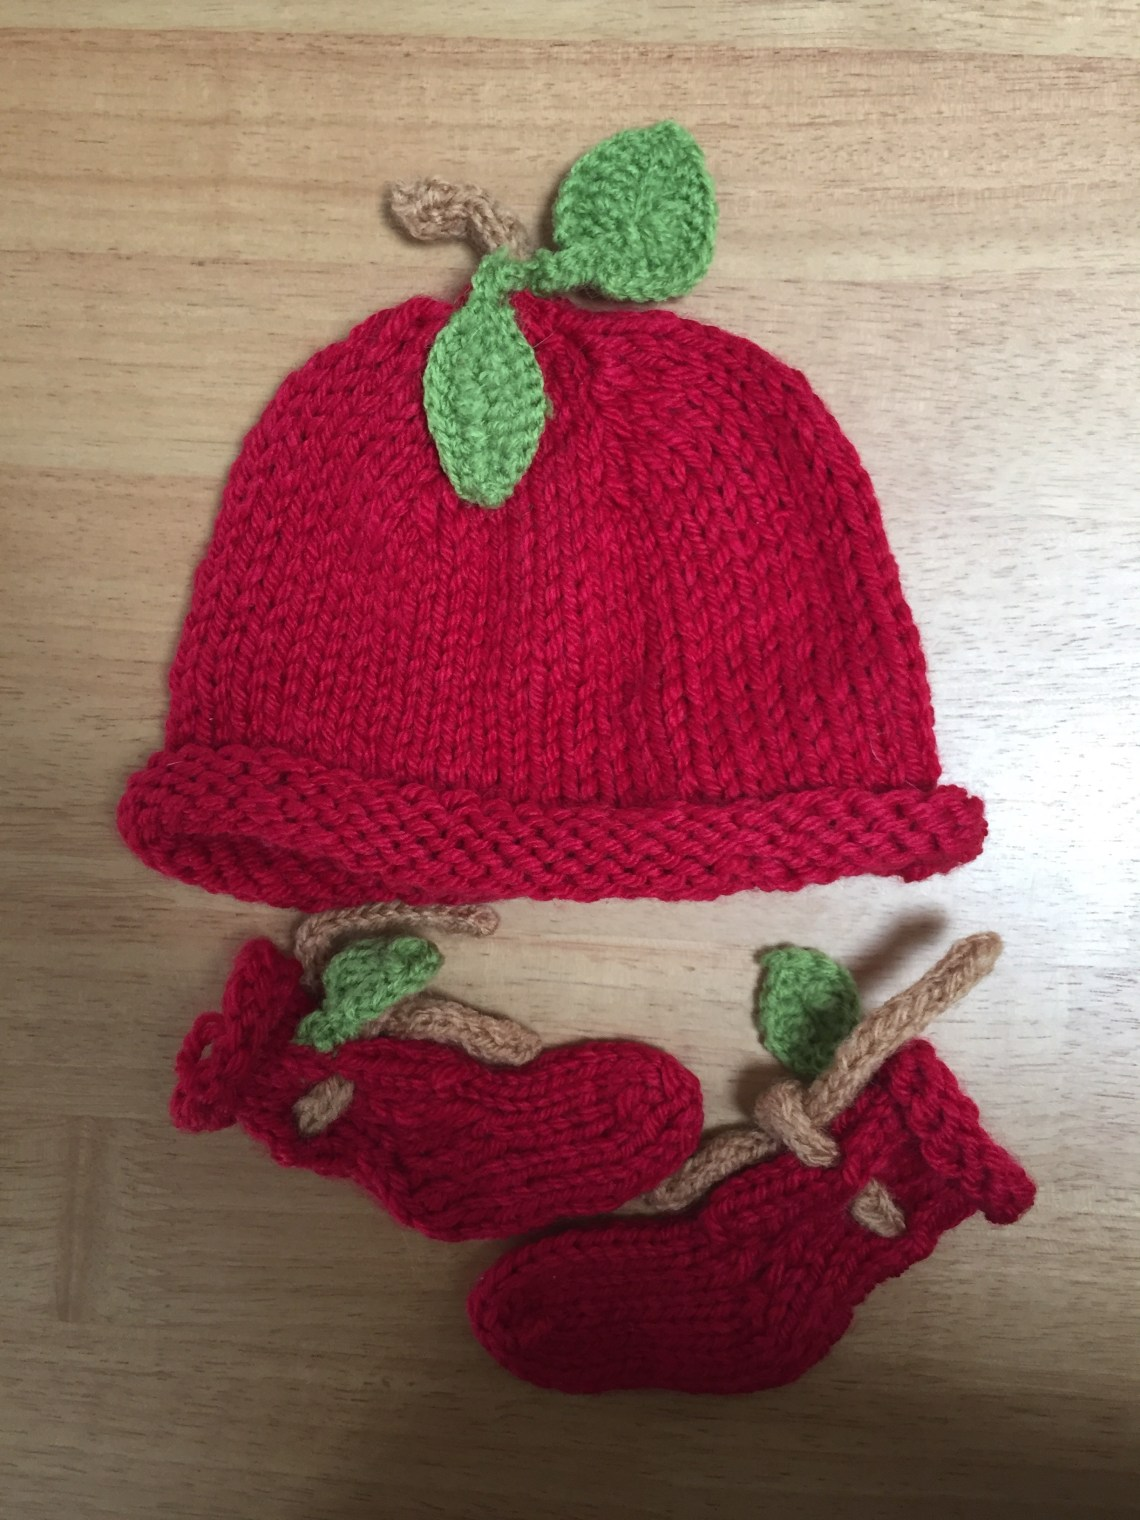 Handknit baby booties and baby hat